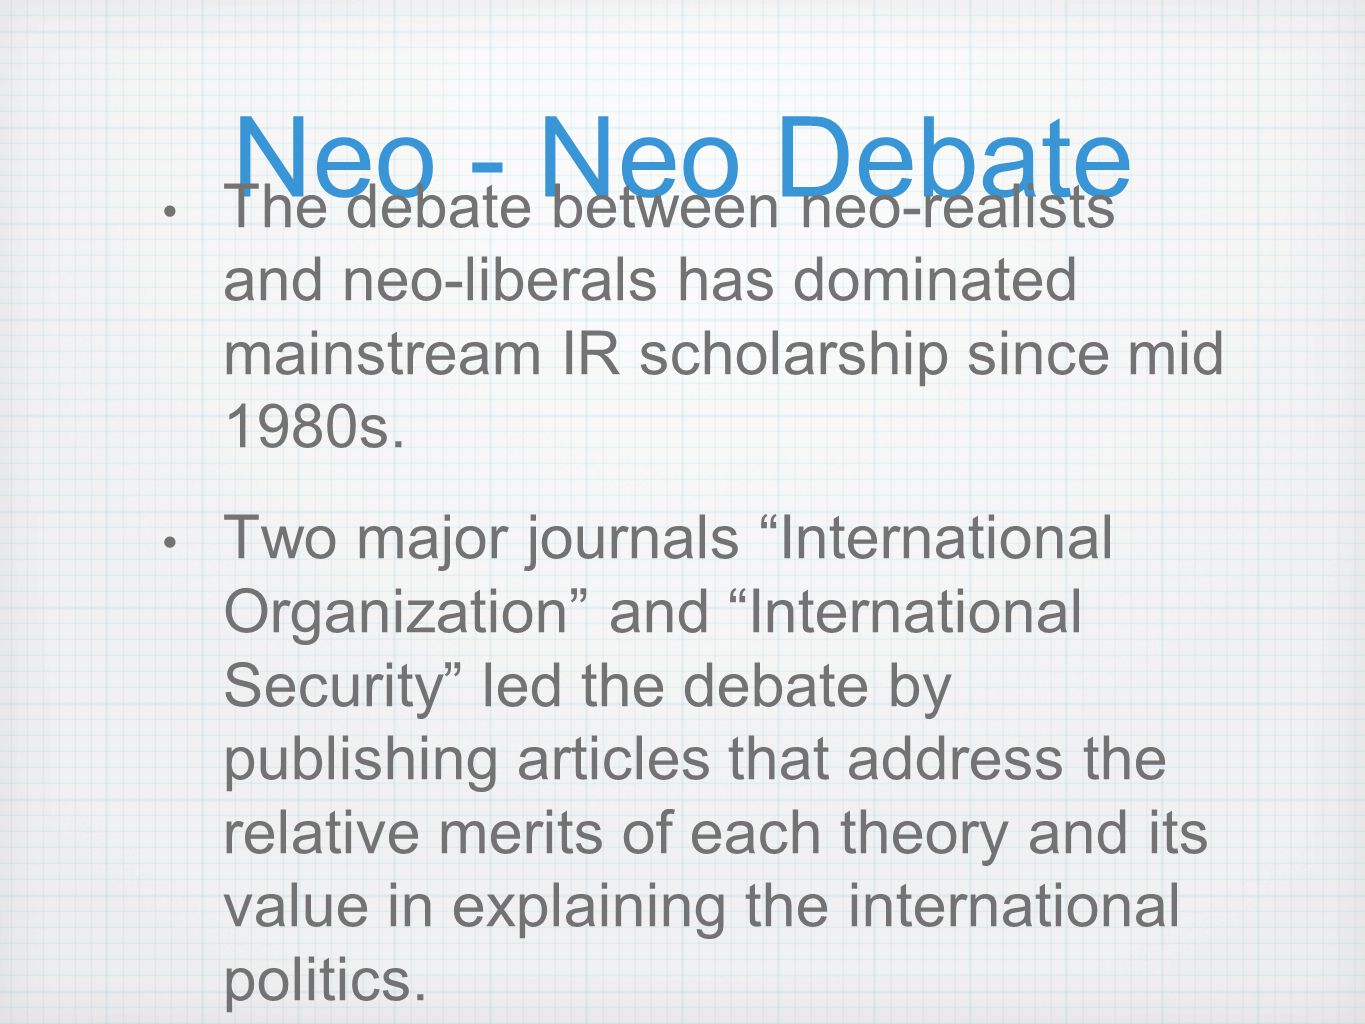 Neo - Neo Debate The debate between neo-realists and neo-liberals has dominated mainstream IR scholarship since mid 1980s.